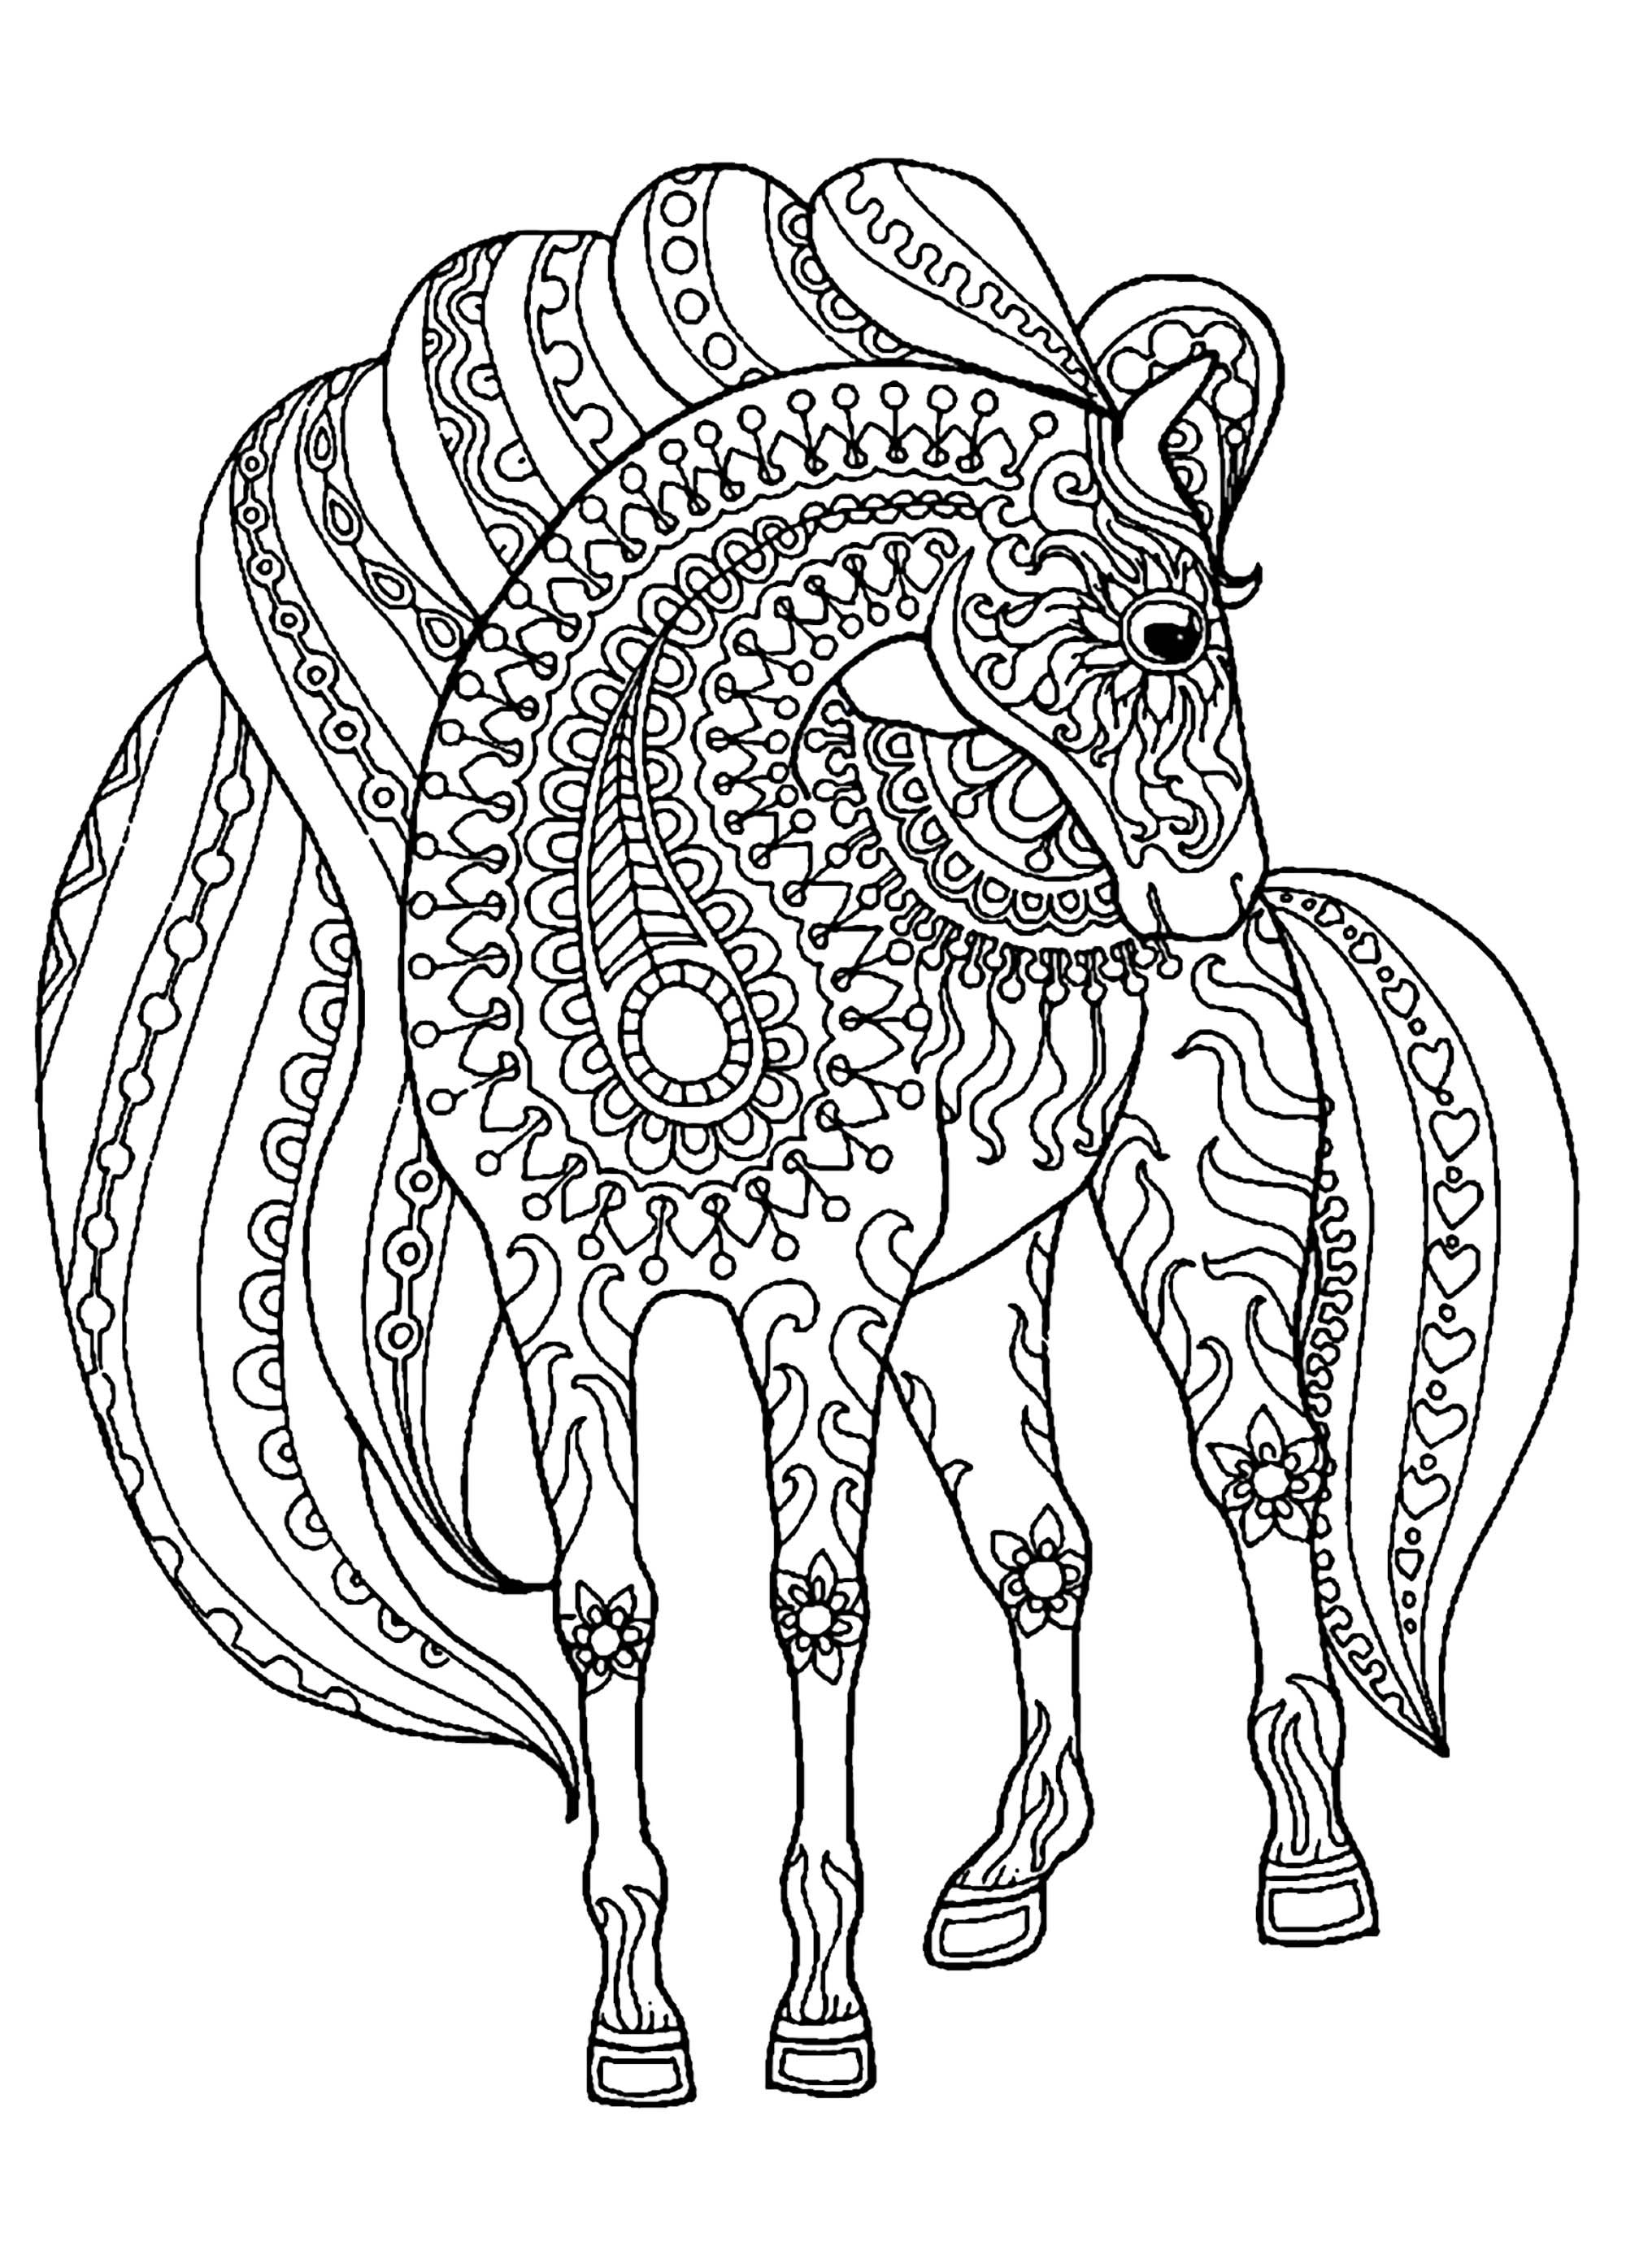 Horse With Simple Zentangle Patterns Horse With Simple Zentangle